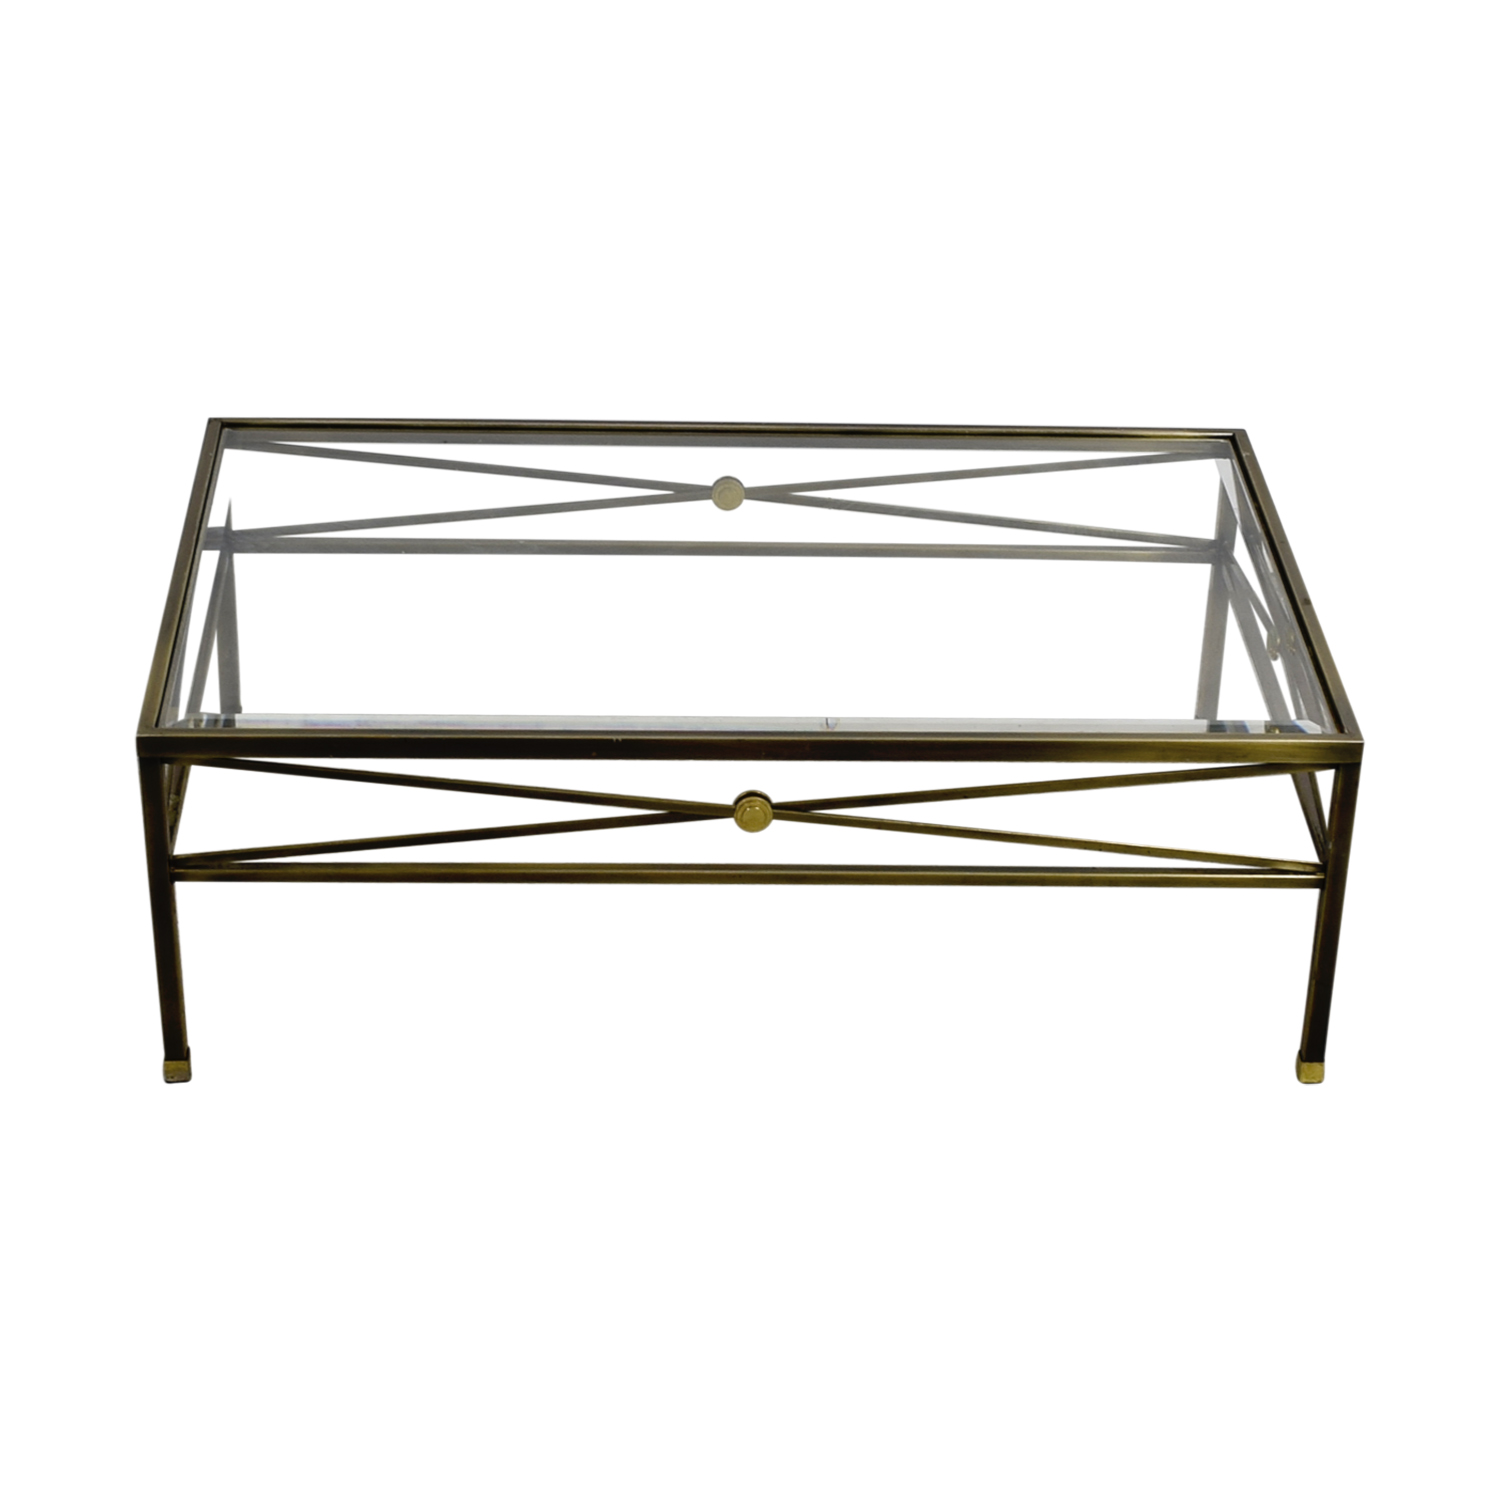 Macys Glass and Brass Coffee Table / Coffee Tables